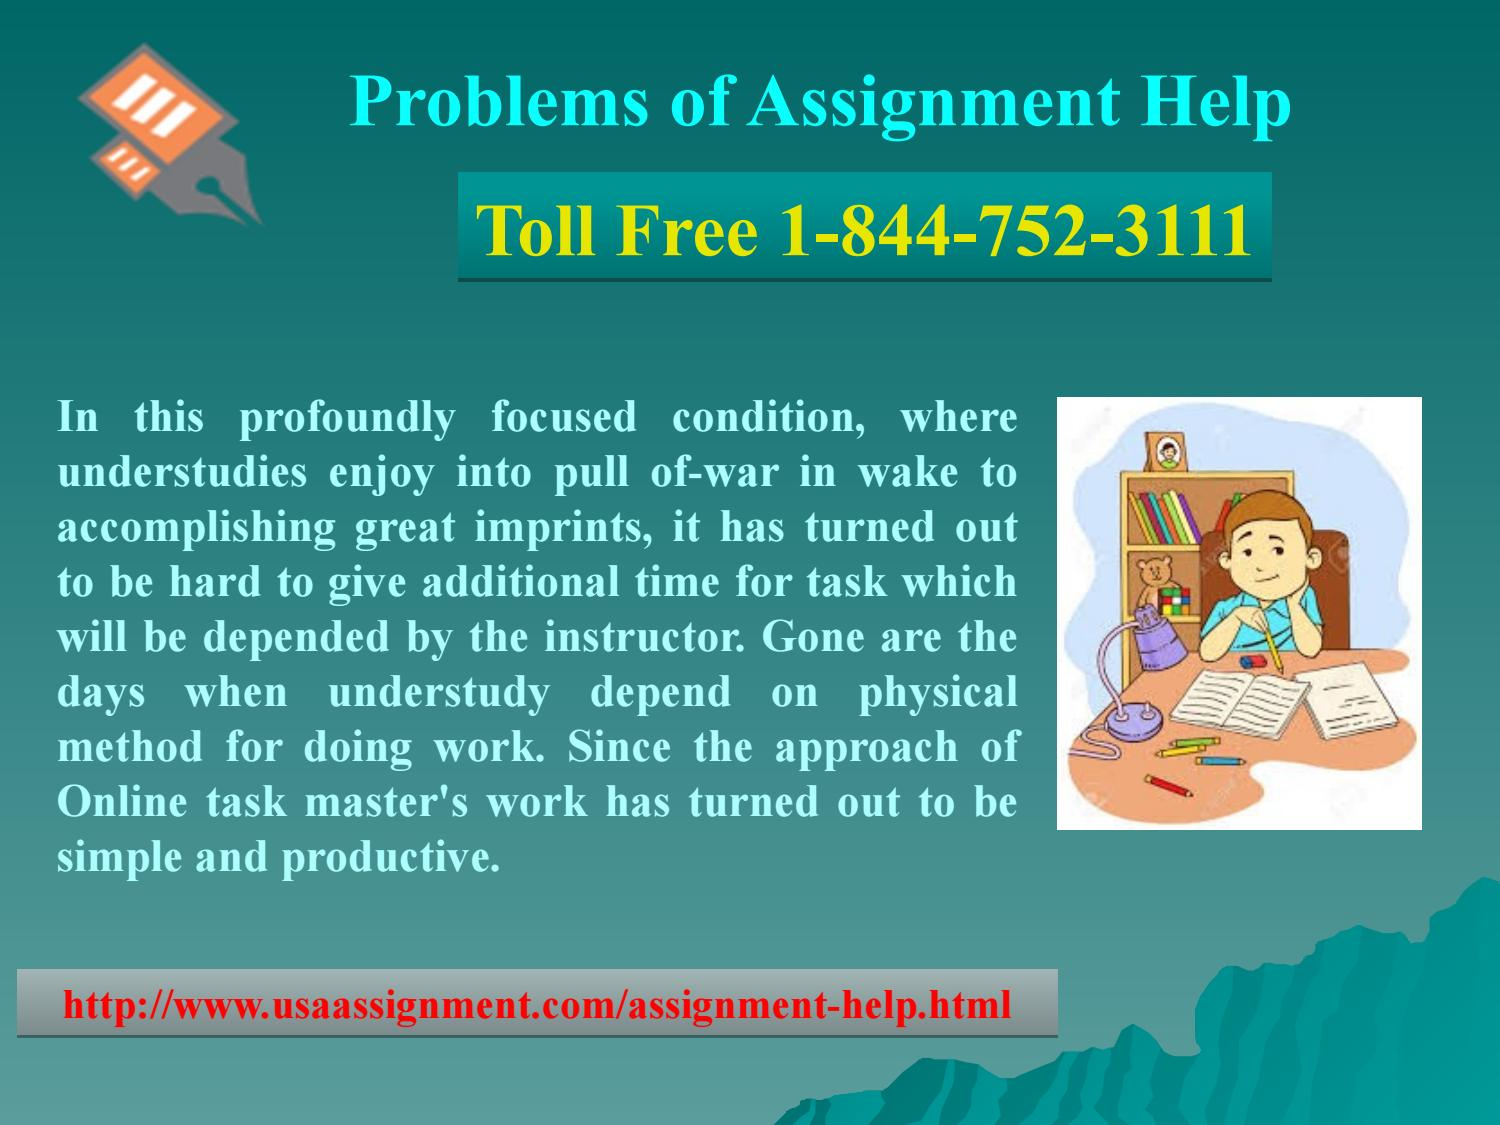 blogger.com - World's No. 1 Assignment Help Company